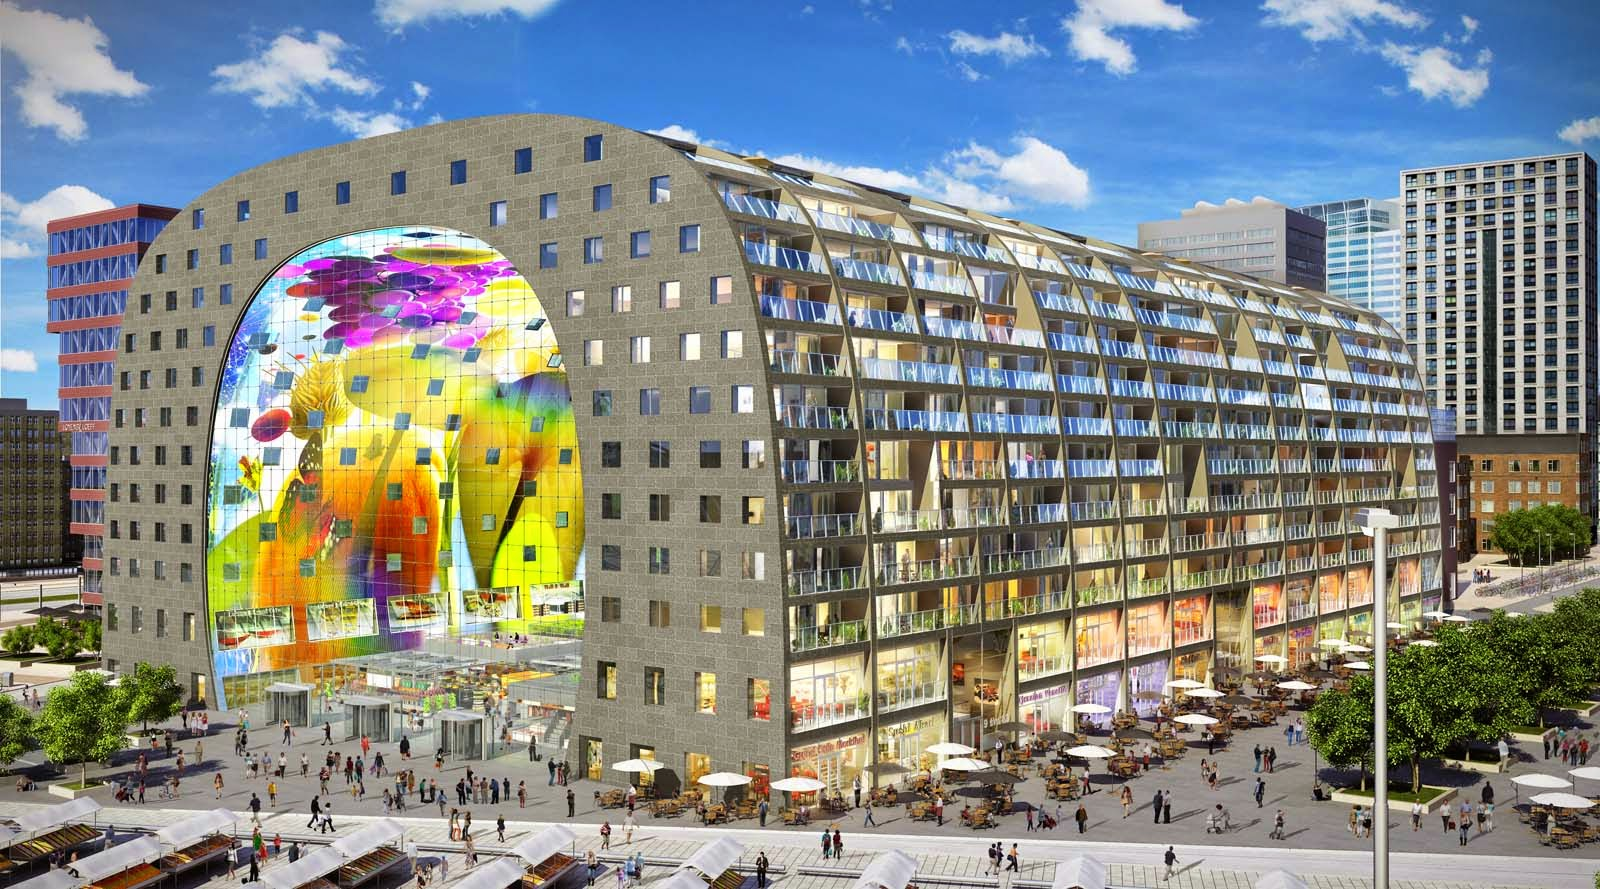 Coming soon: Markthal Rotterdam!